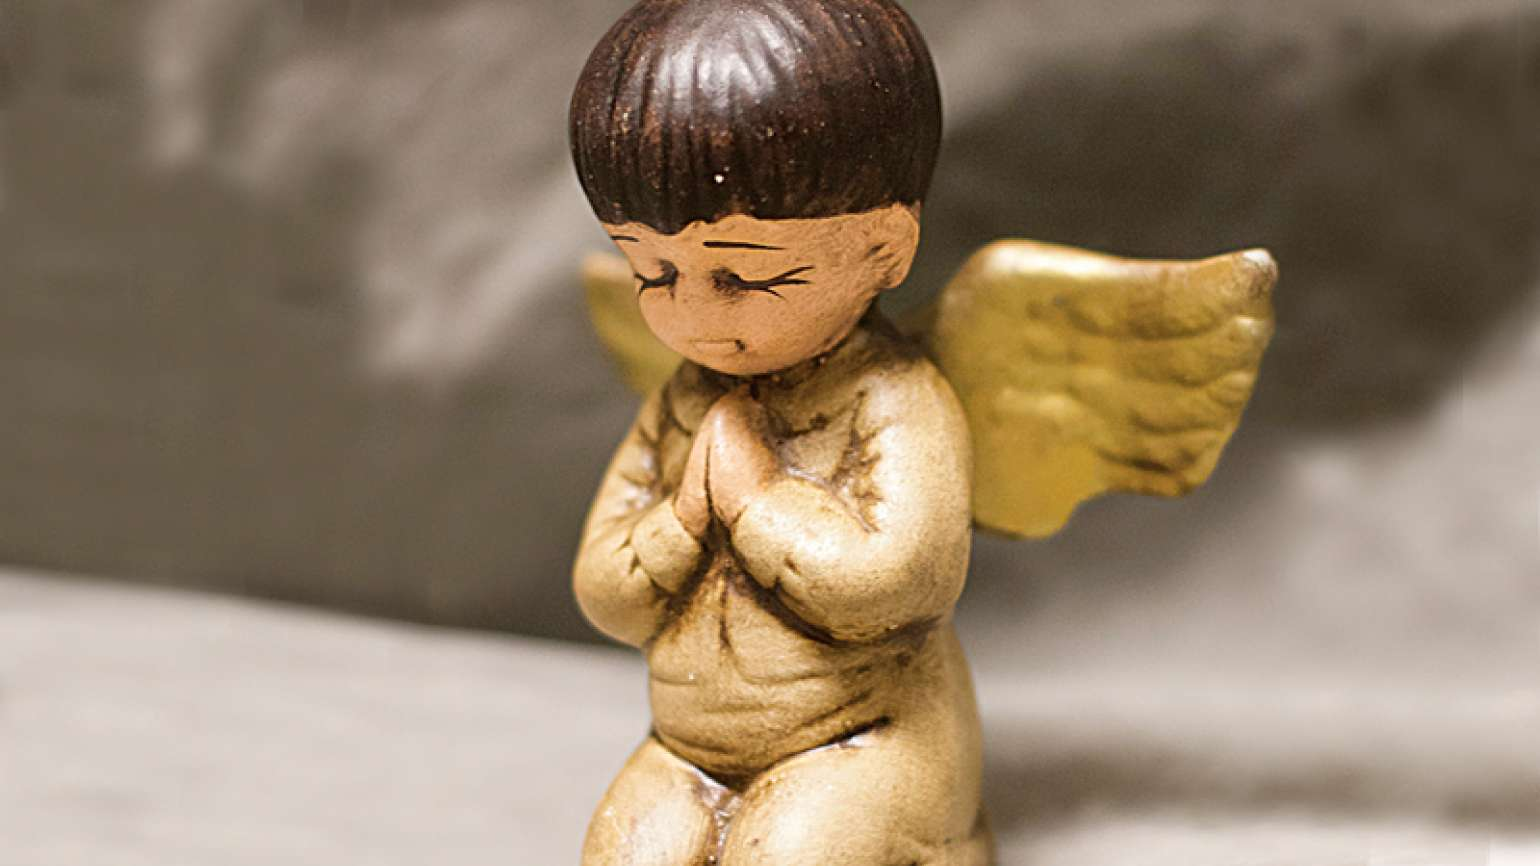 A ceramic angel with mocha-colored skin and cropped brown hair